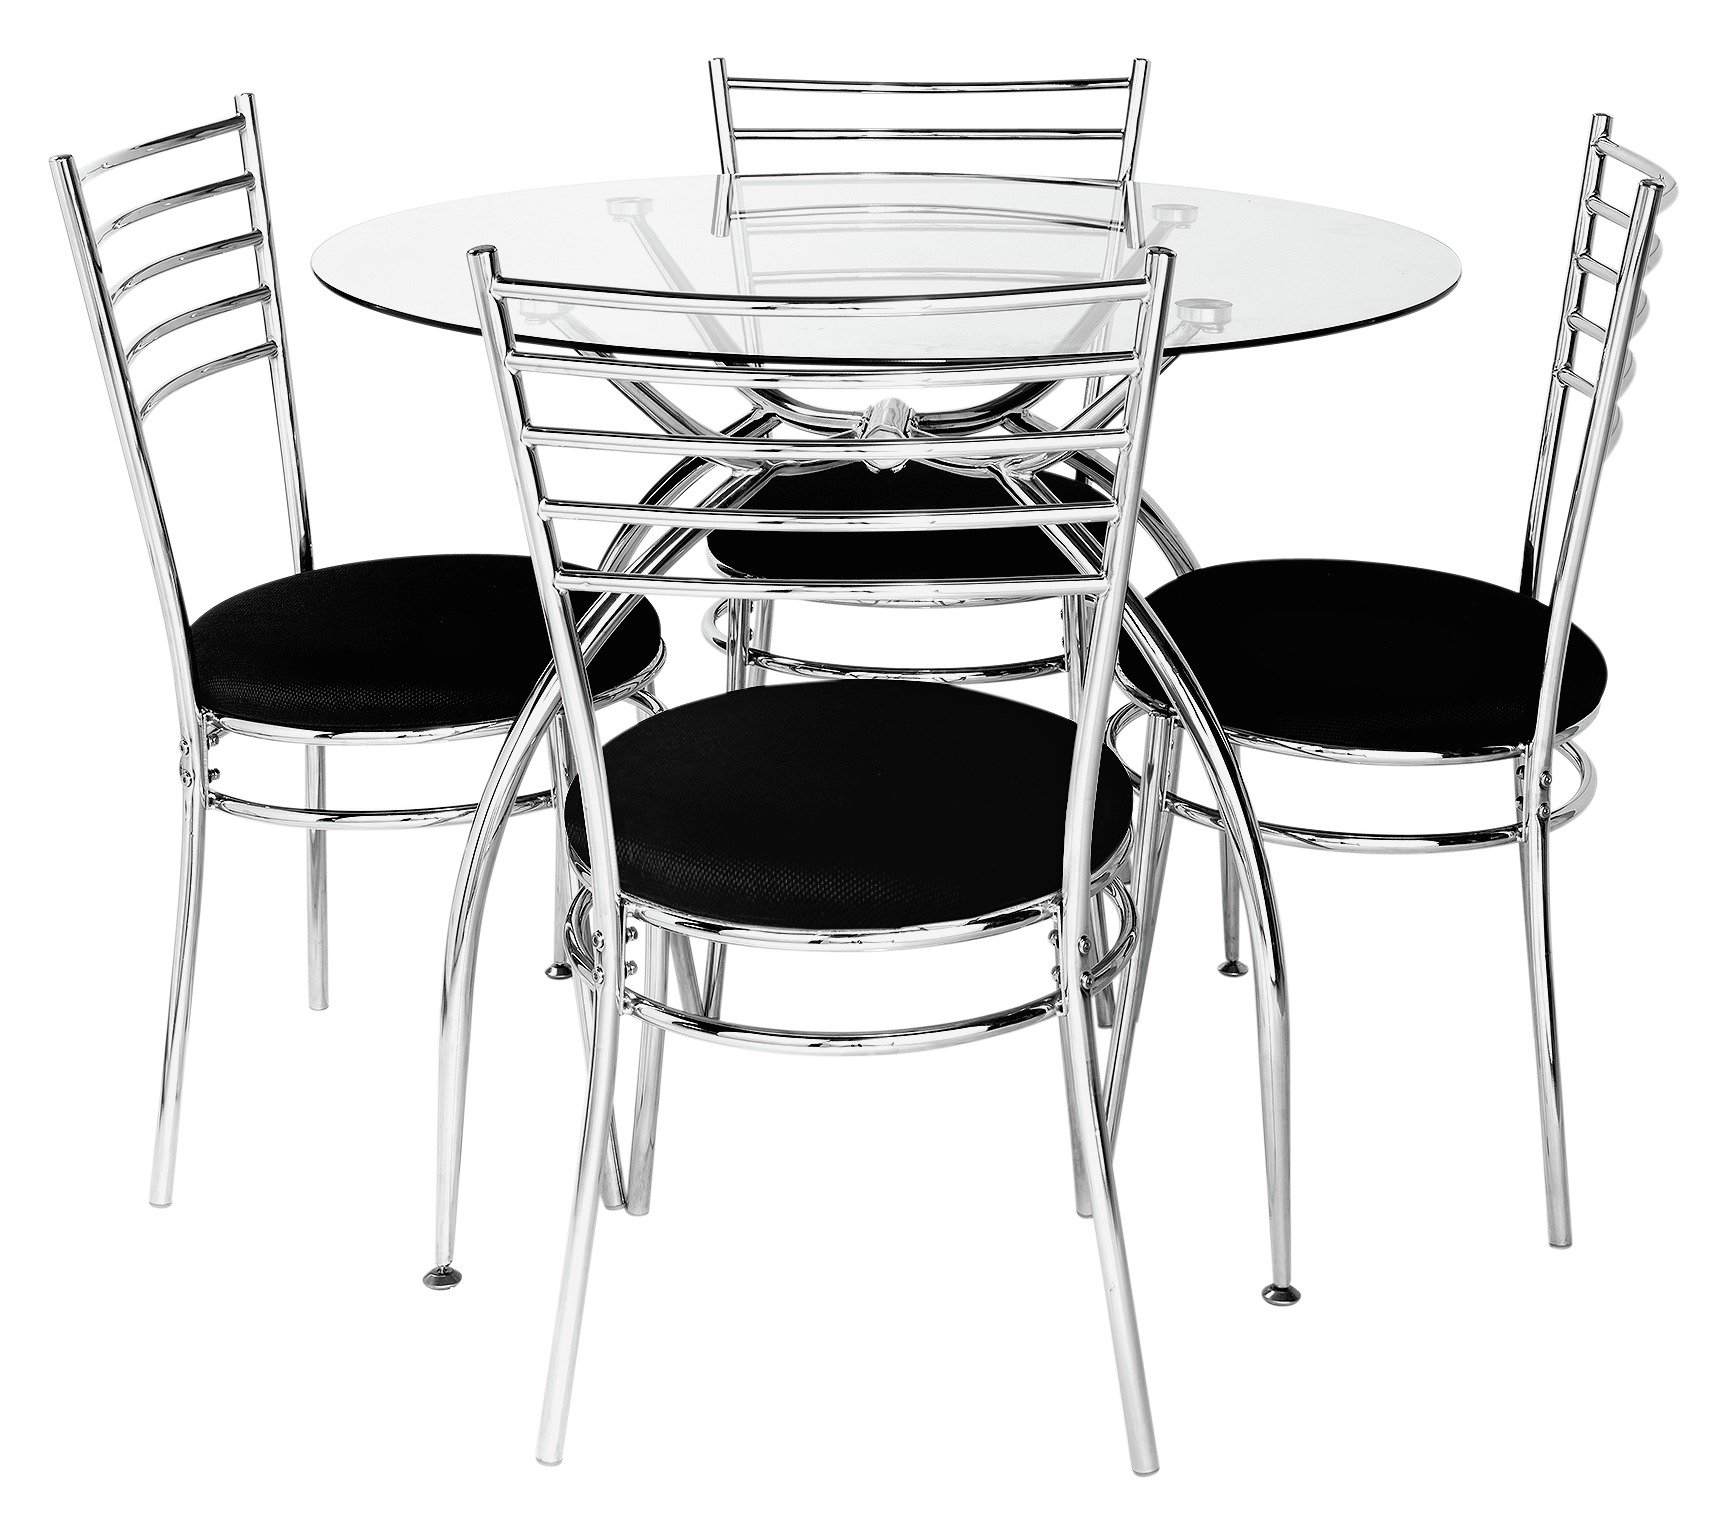 Hygena Lusi Glass Dining Table & 4 Chairs Review